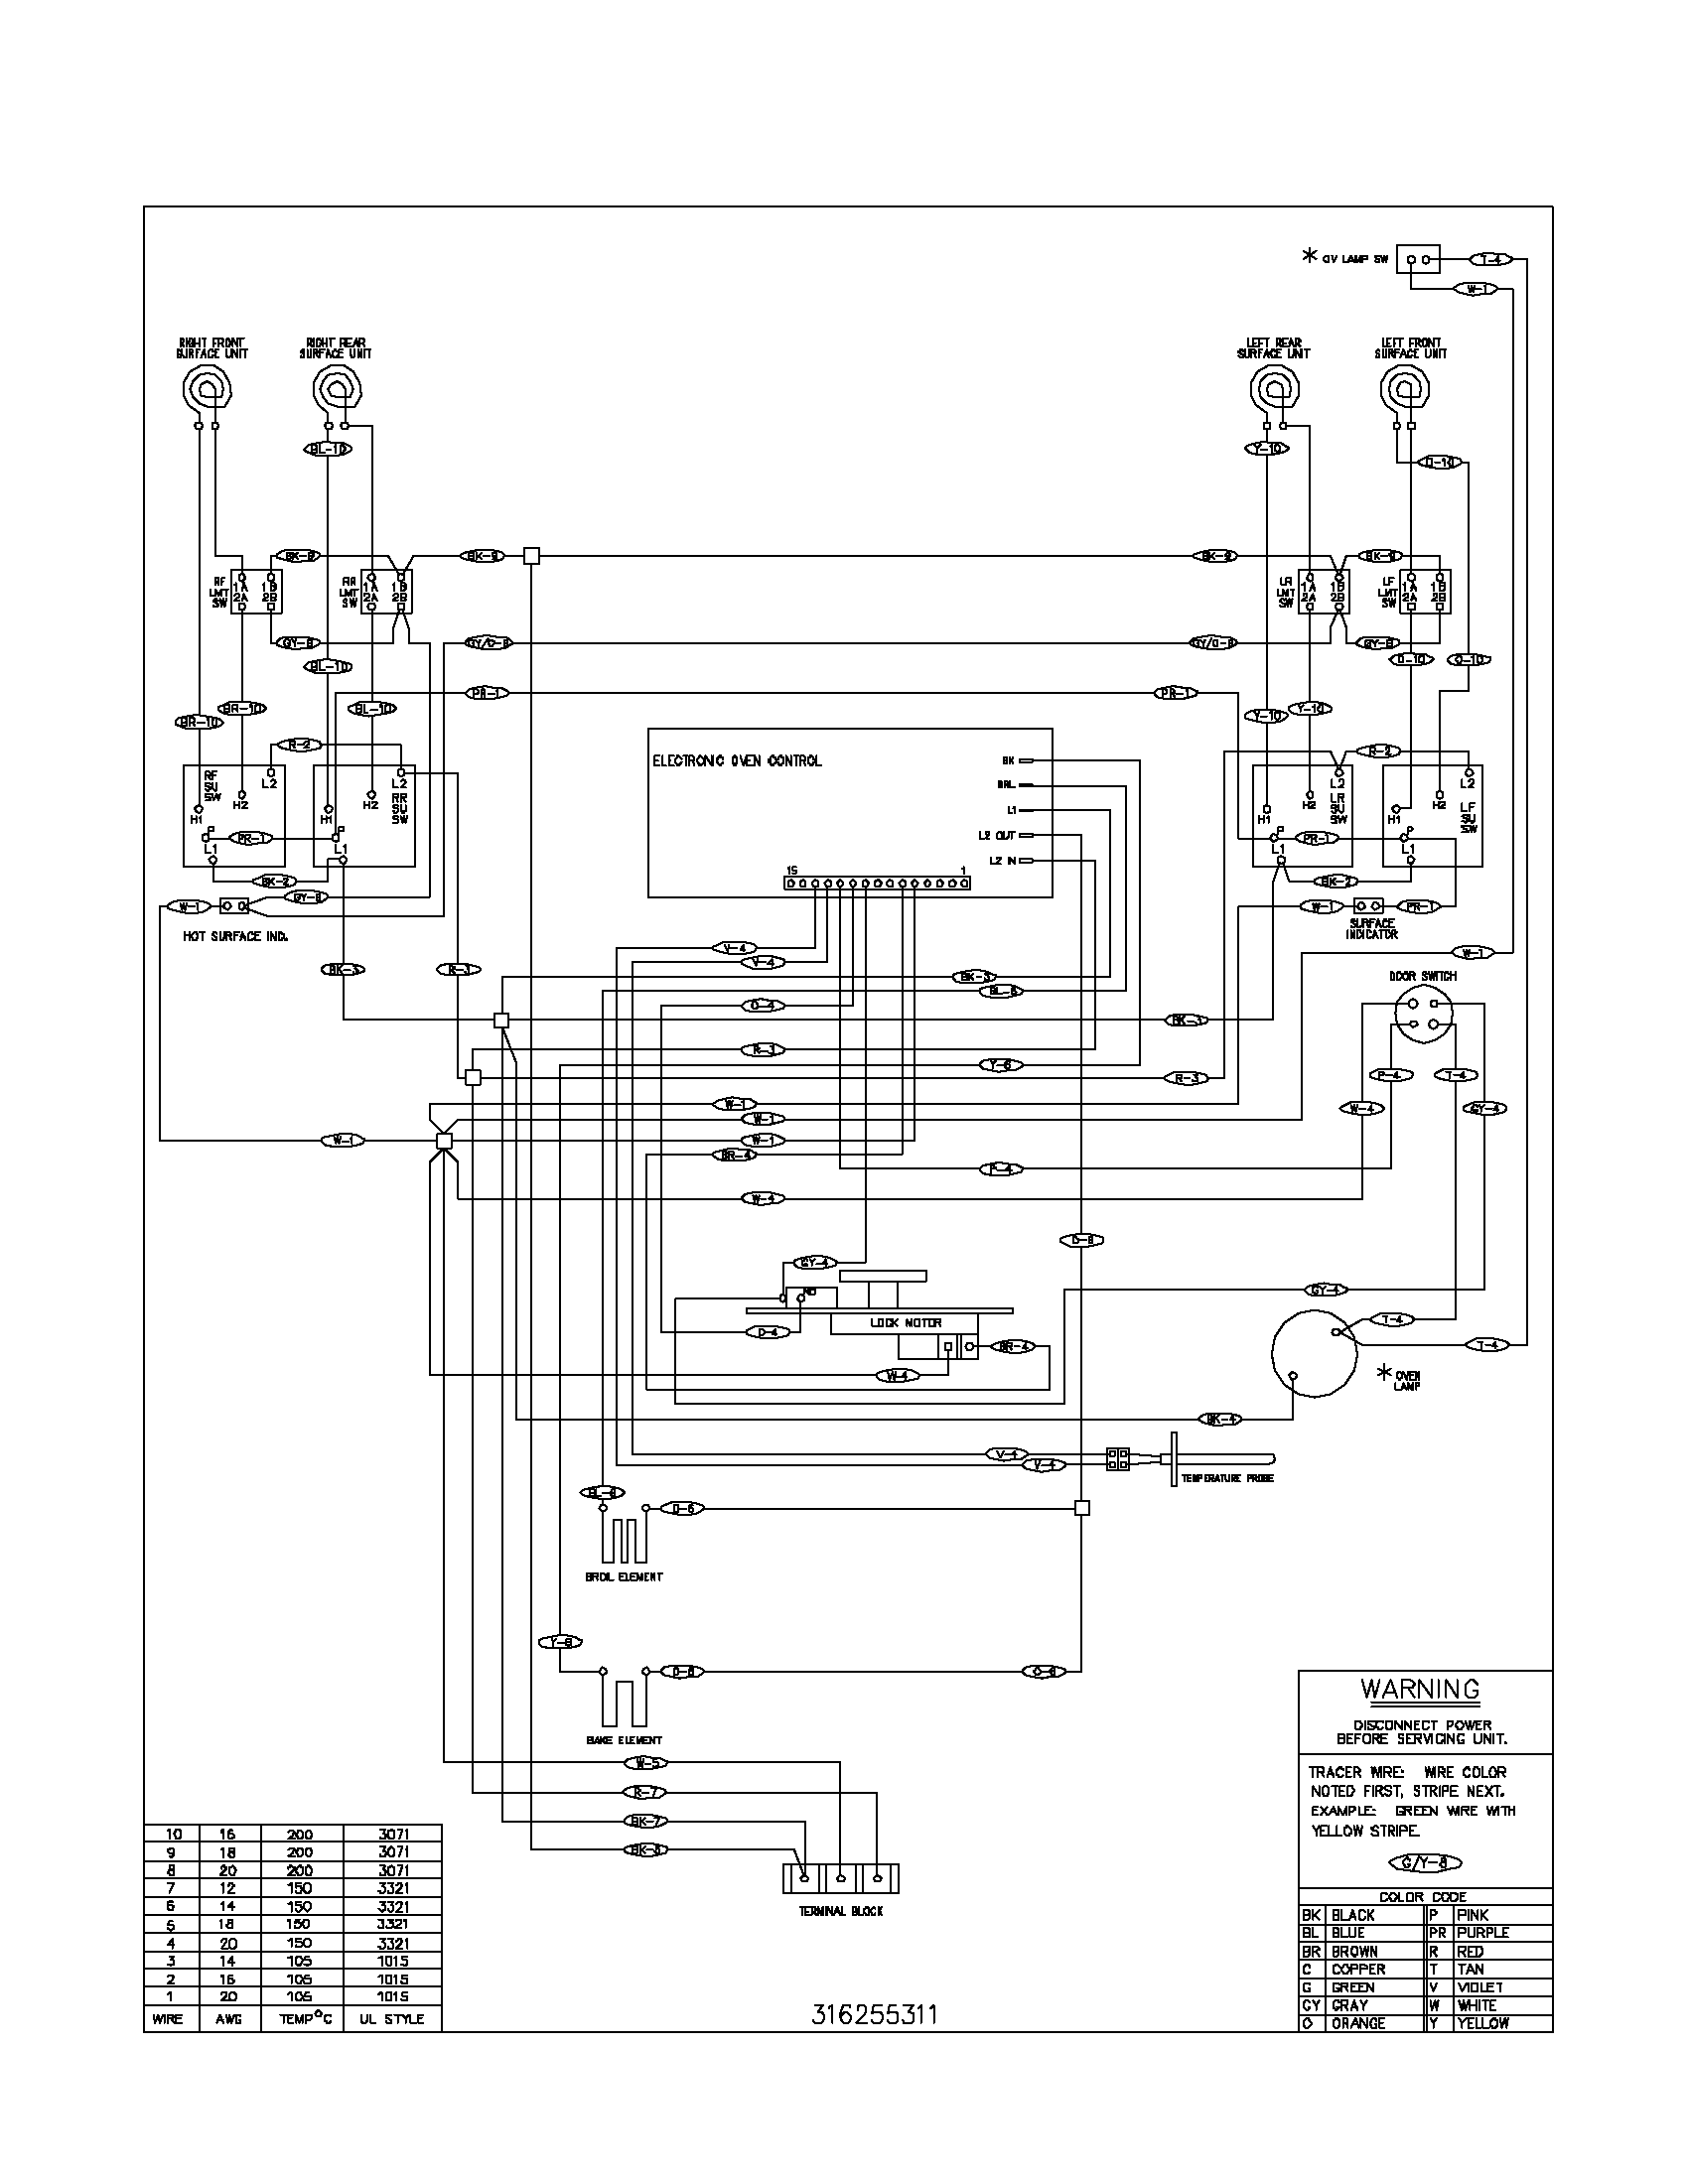 wiring diagram parts frigidaire fef366ccb electric range timer stove clocks and universal oven thermostat wiring diagram at gsmx.co